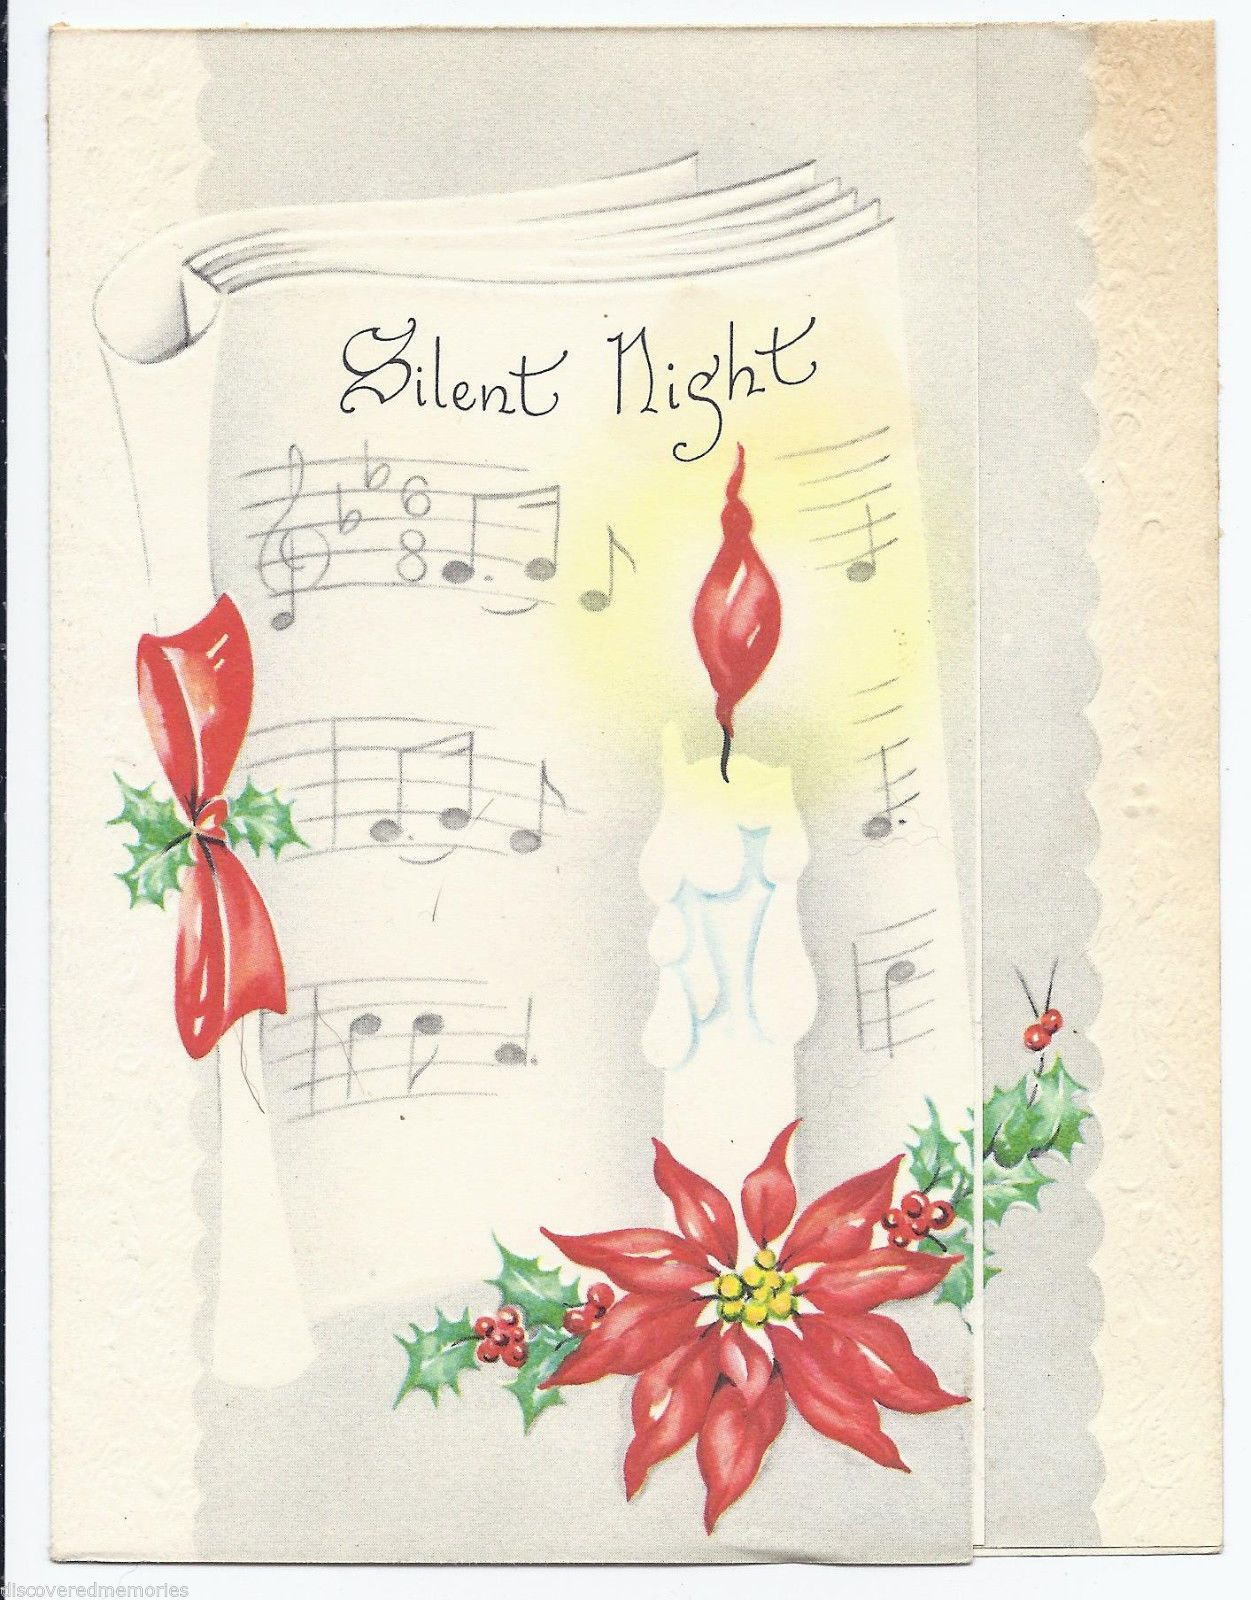 865 vintage 40s candle bright w sheet music poinsettia christmas 865 vintage 40s candle bright w sheet music poinsettia christmas greeting card ebay m4hsunfo